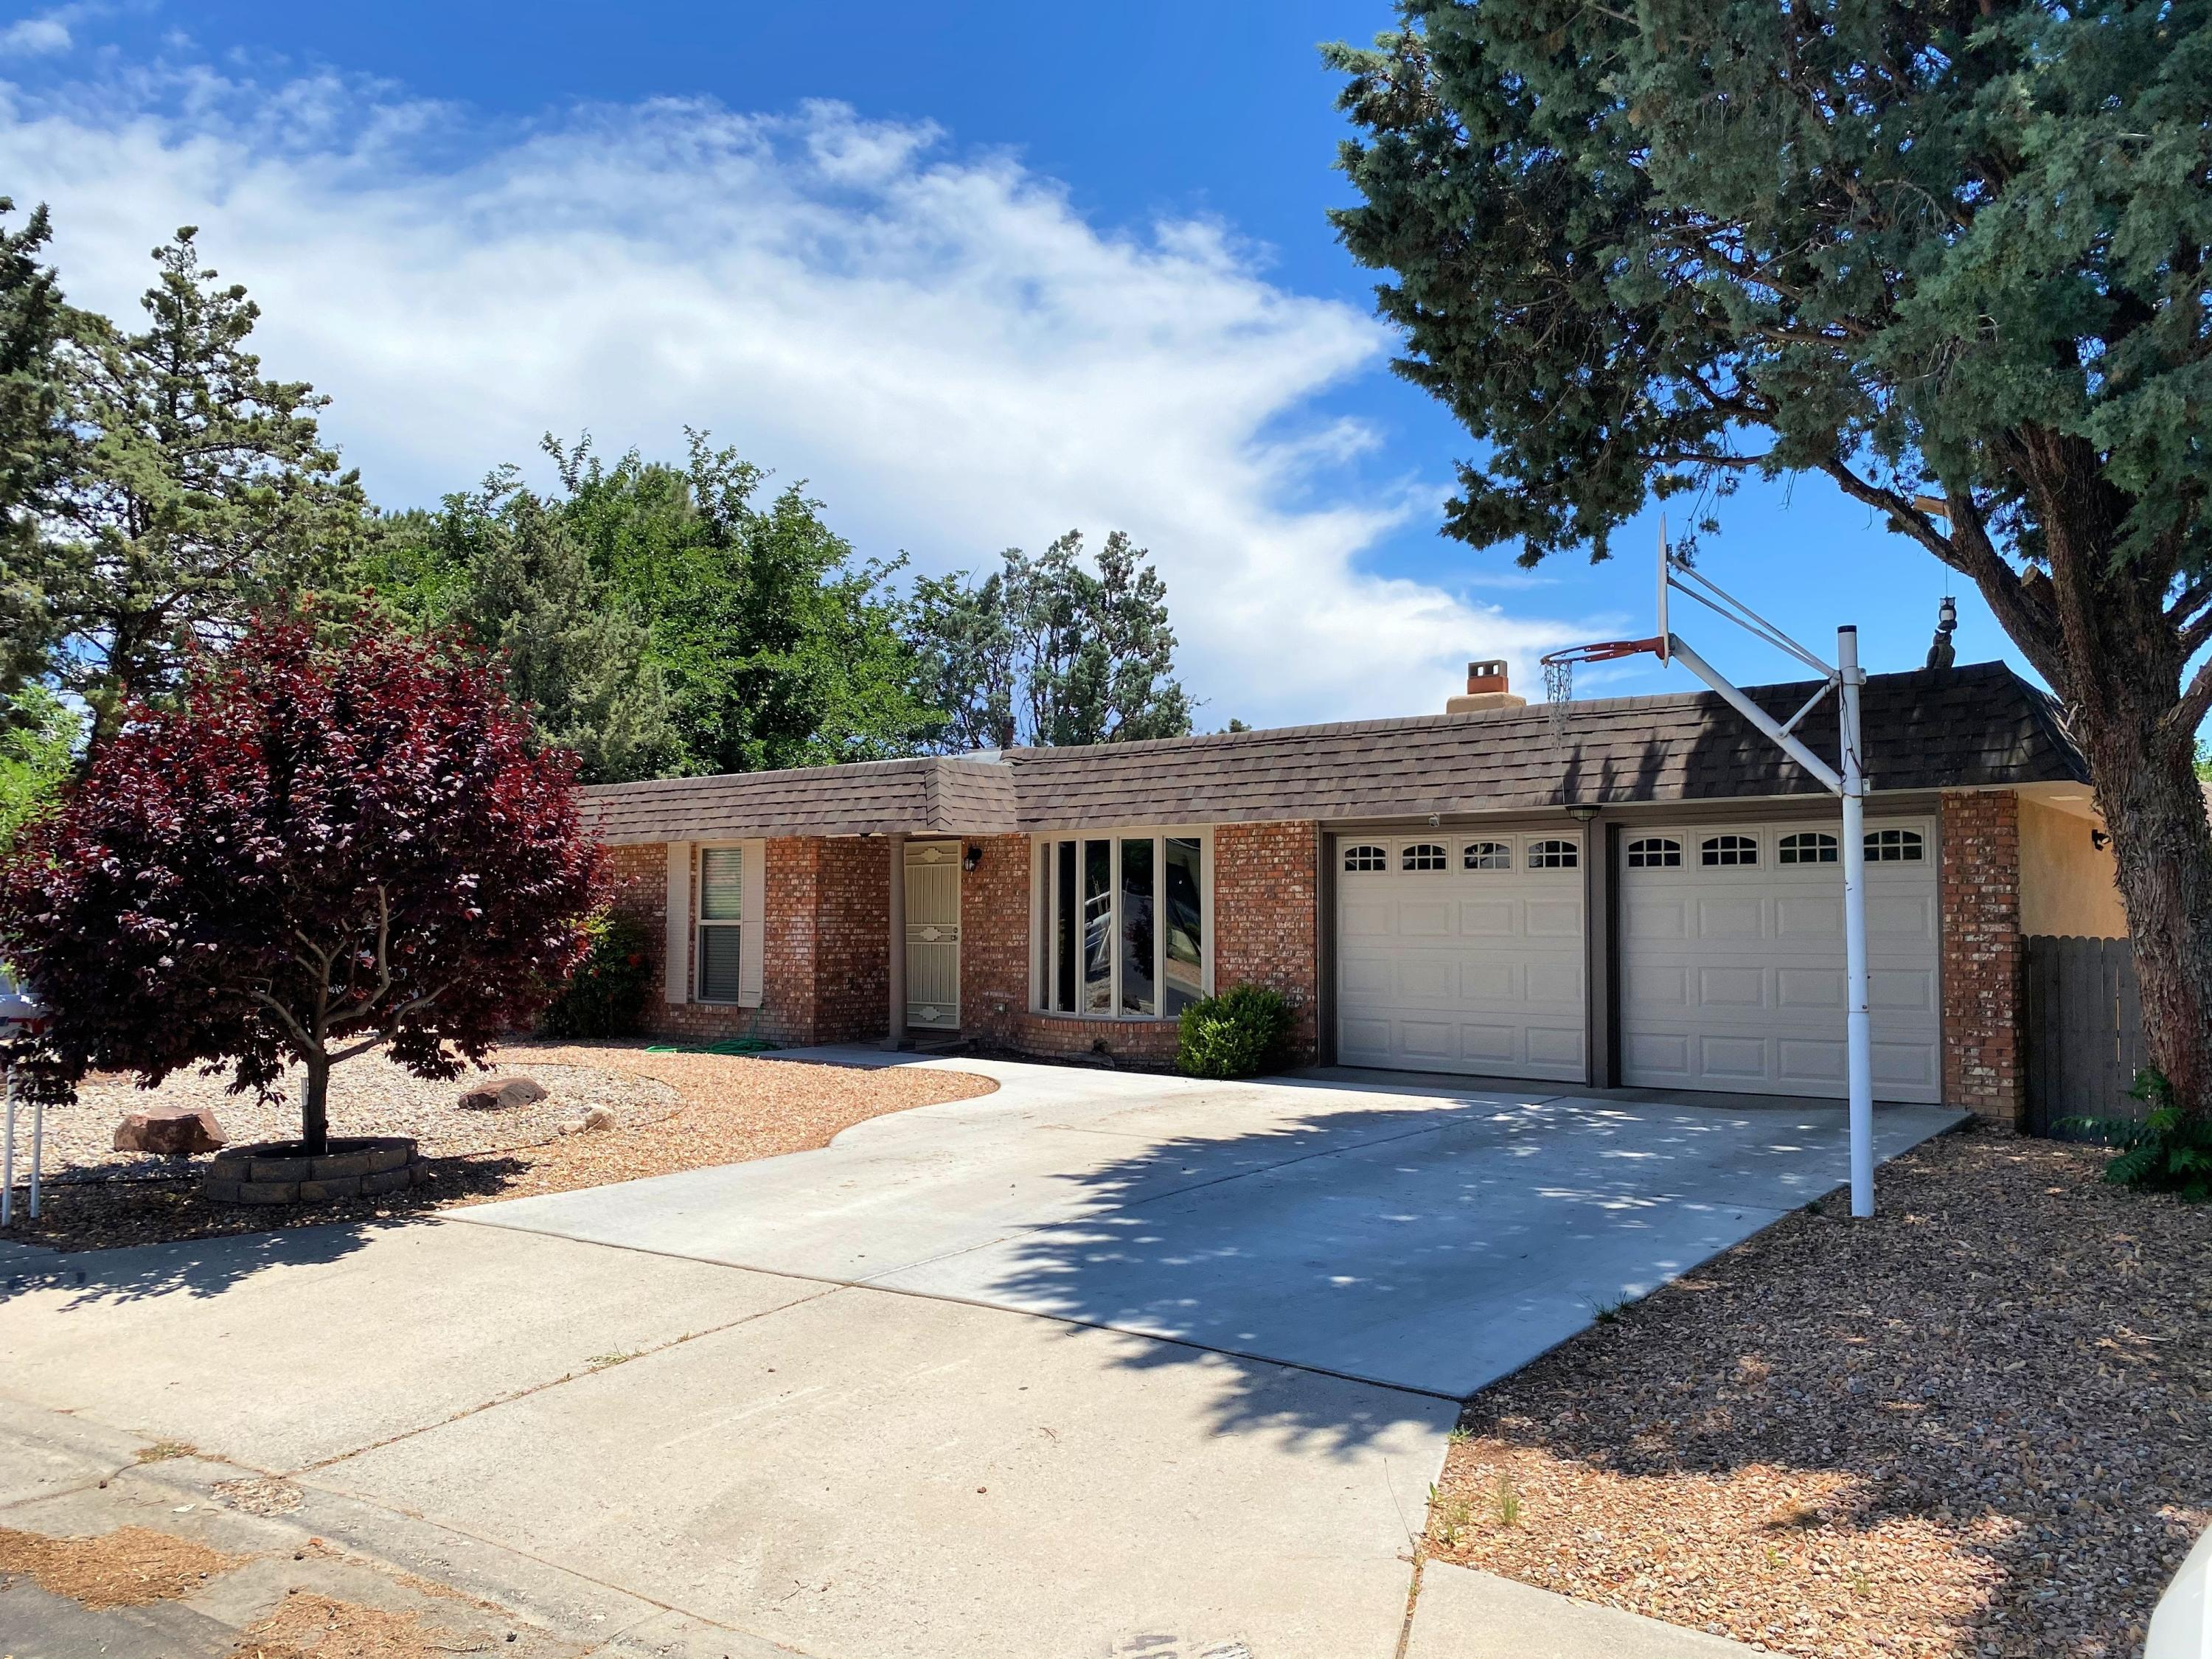 Fully updated home located near Arroyo Del Oso golf course! This beauty includes 2 living areas with an open floor plan perfect for entertaining! Updated kitchen with new cabinets, granite countertop & built in desk/work station. Living room area features a custom wood burning fireplace. Both bathrooms are completed updated. Come see this home today!!